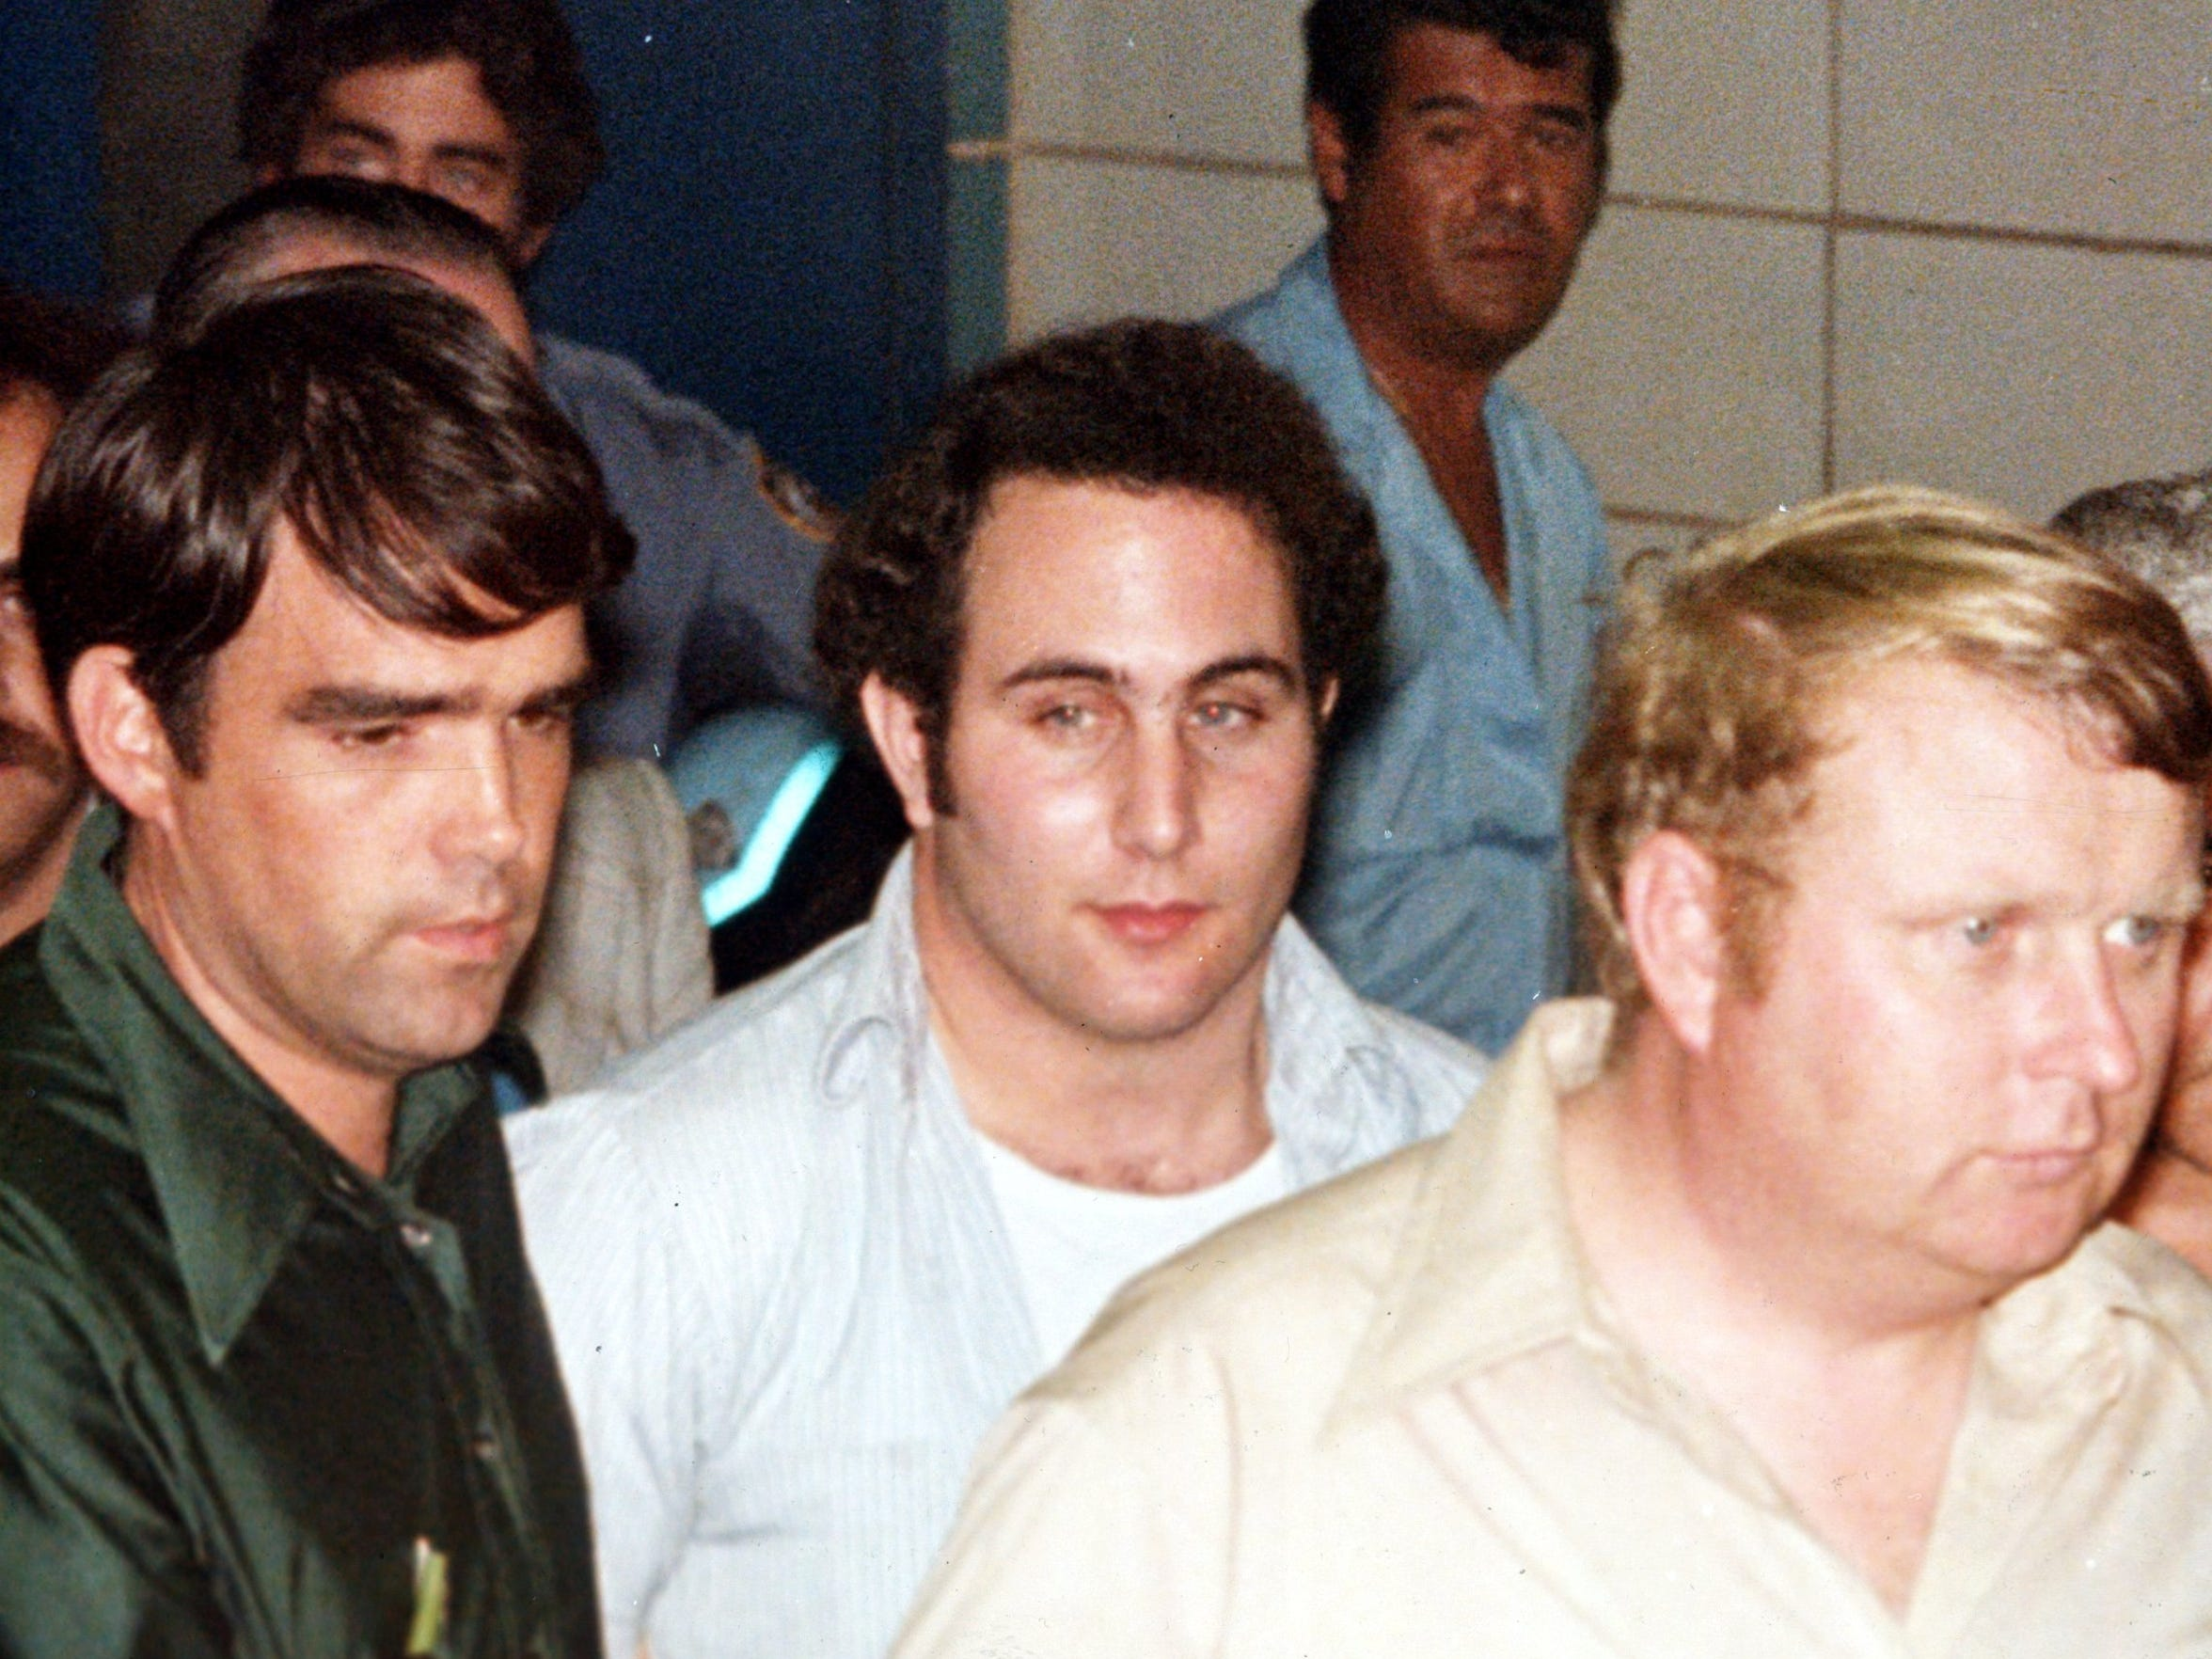 Police officials surround David Berkowitz, 24, of Yonkers,